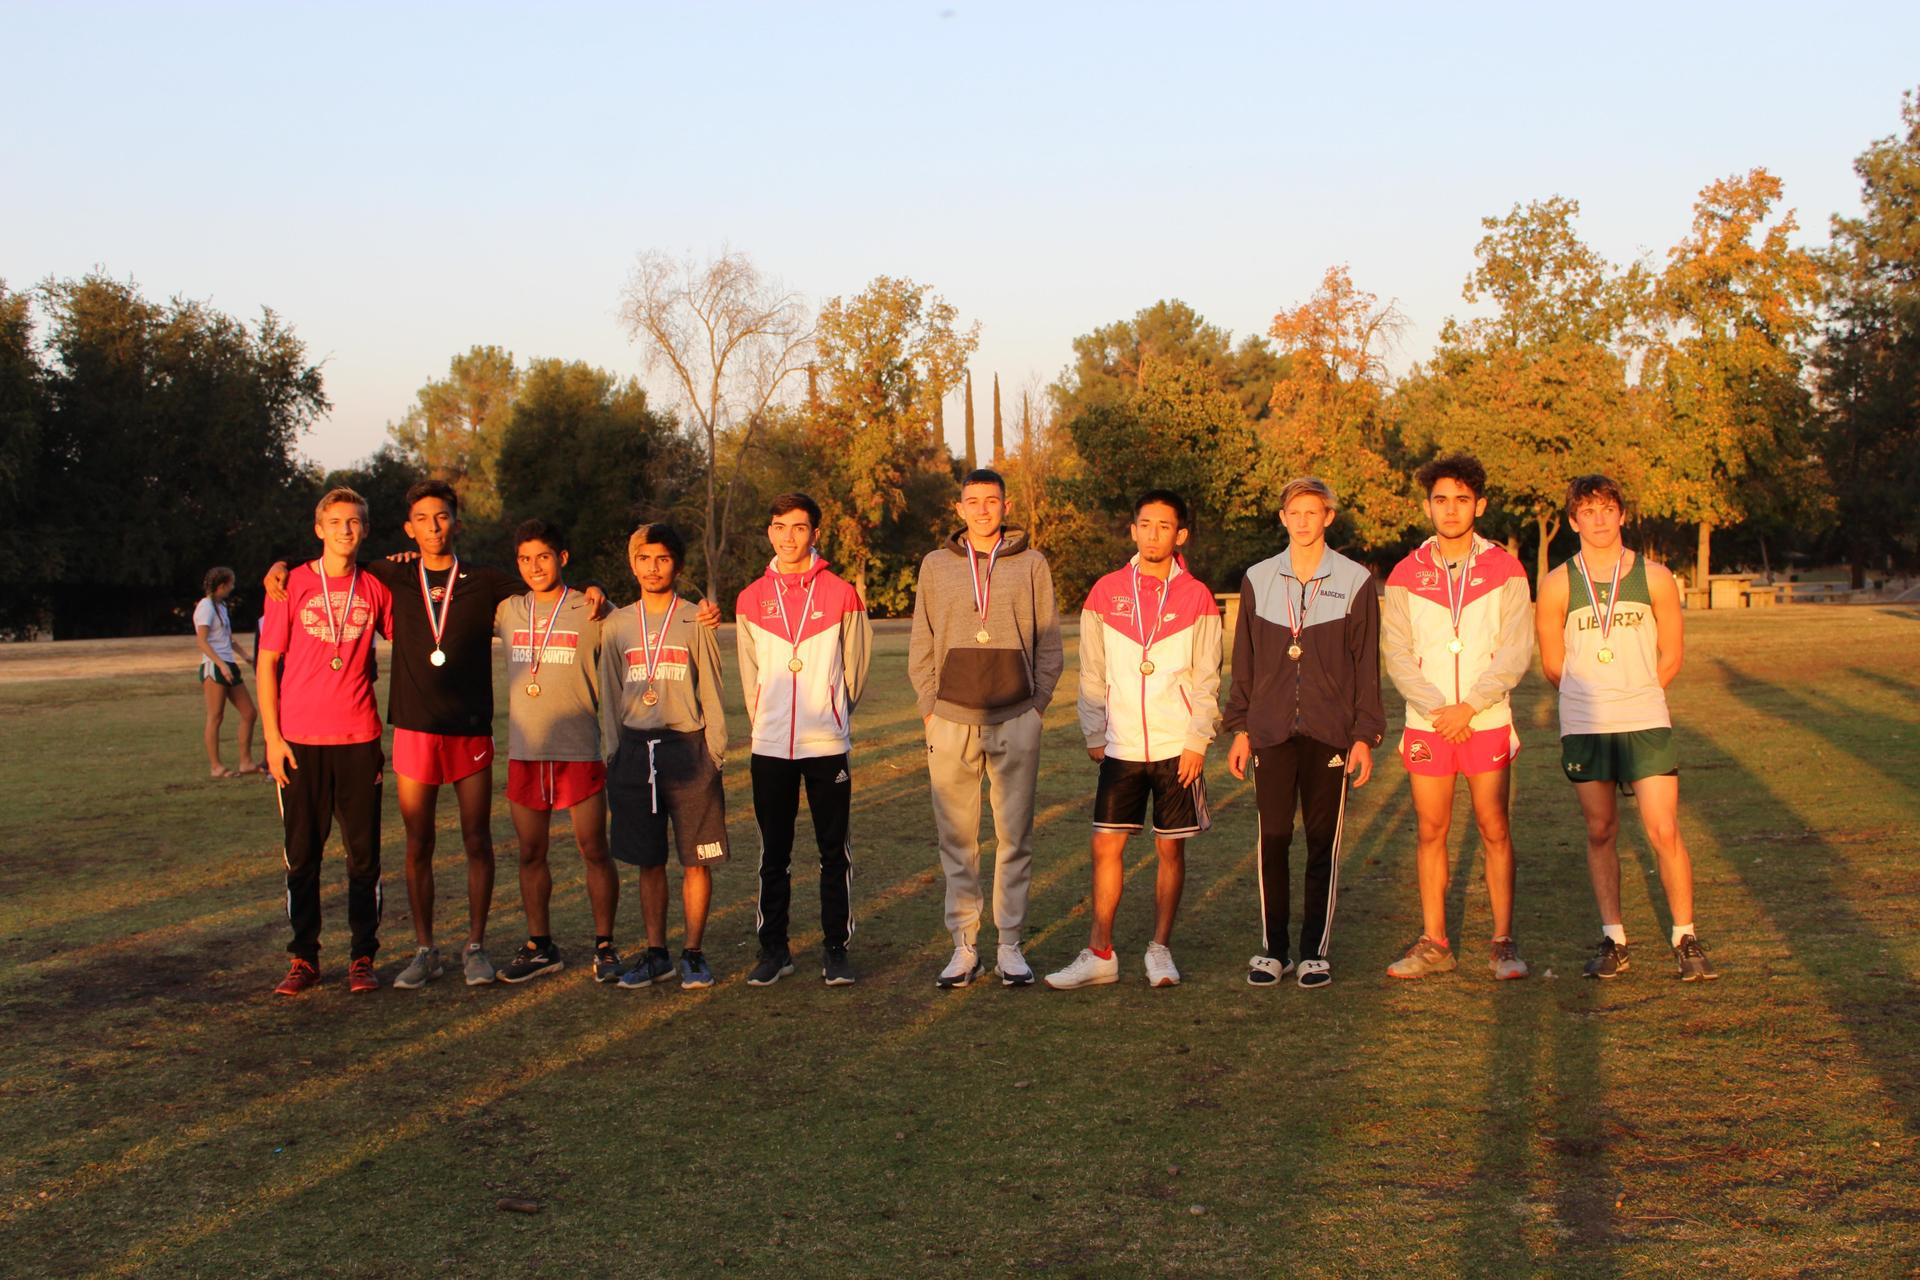 Varsity Boys medalists pose.